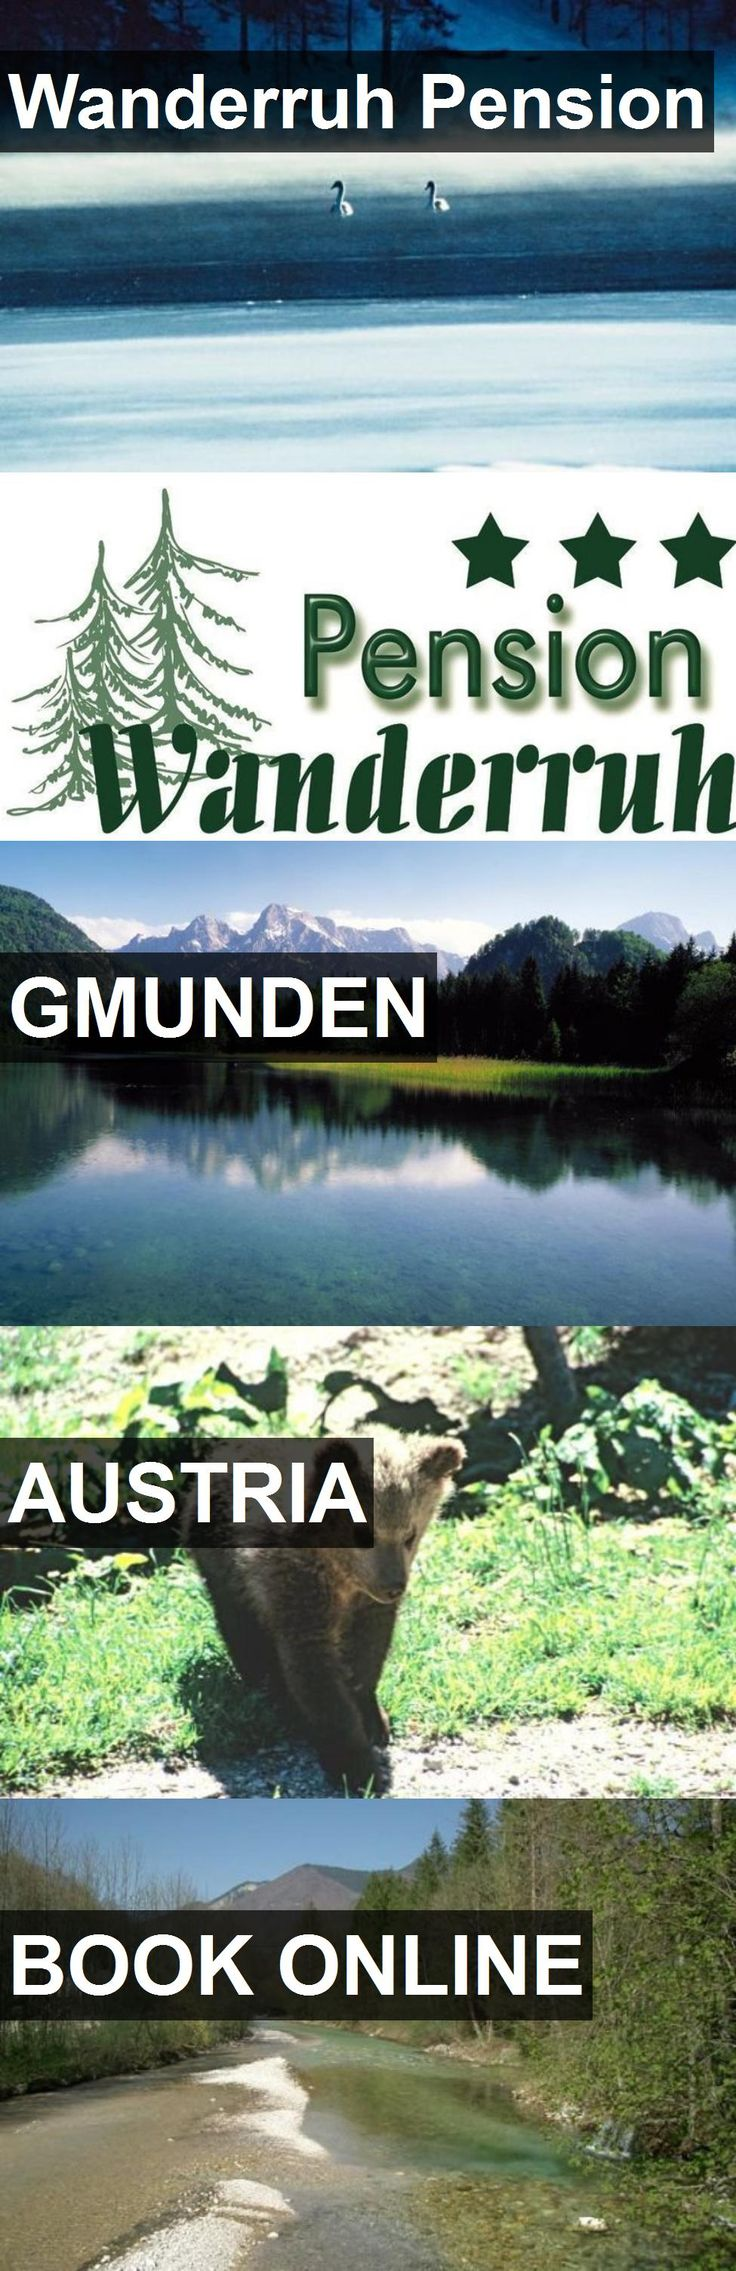 Hotel Wanderruh Pension in Gmunden, Austria. For more information, photos, reviews and best prices please follow the link. #Austria #Gmunden #travel #vacation #hotel